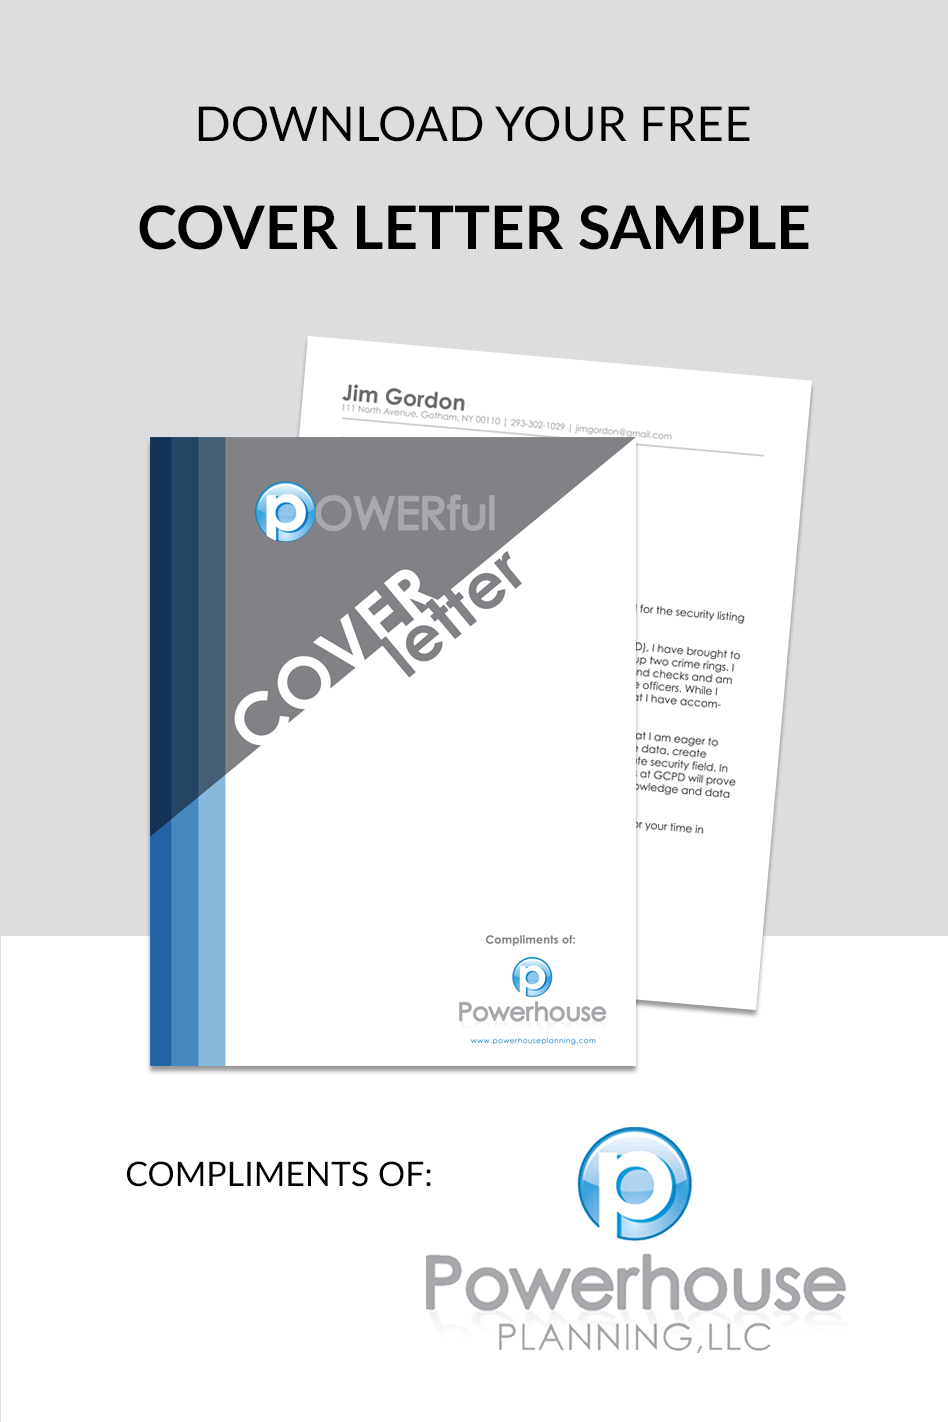 Download Your Free Cover Letter Sample Compliments Of Powerhouse